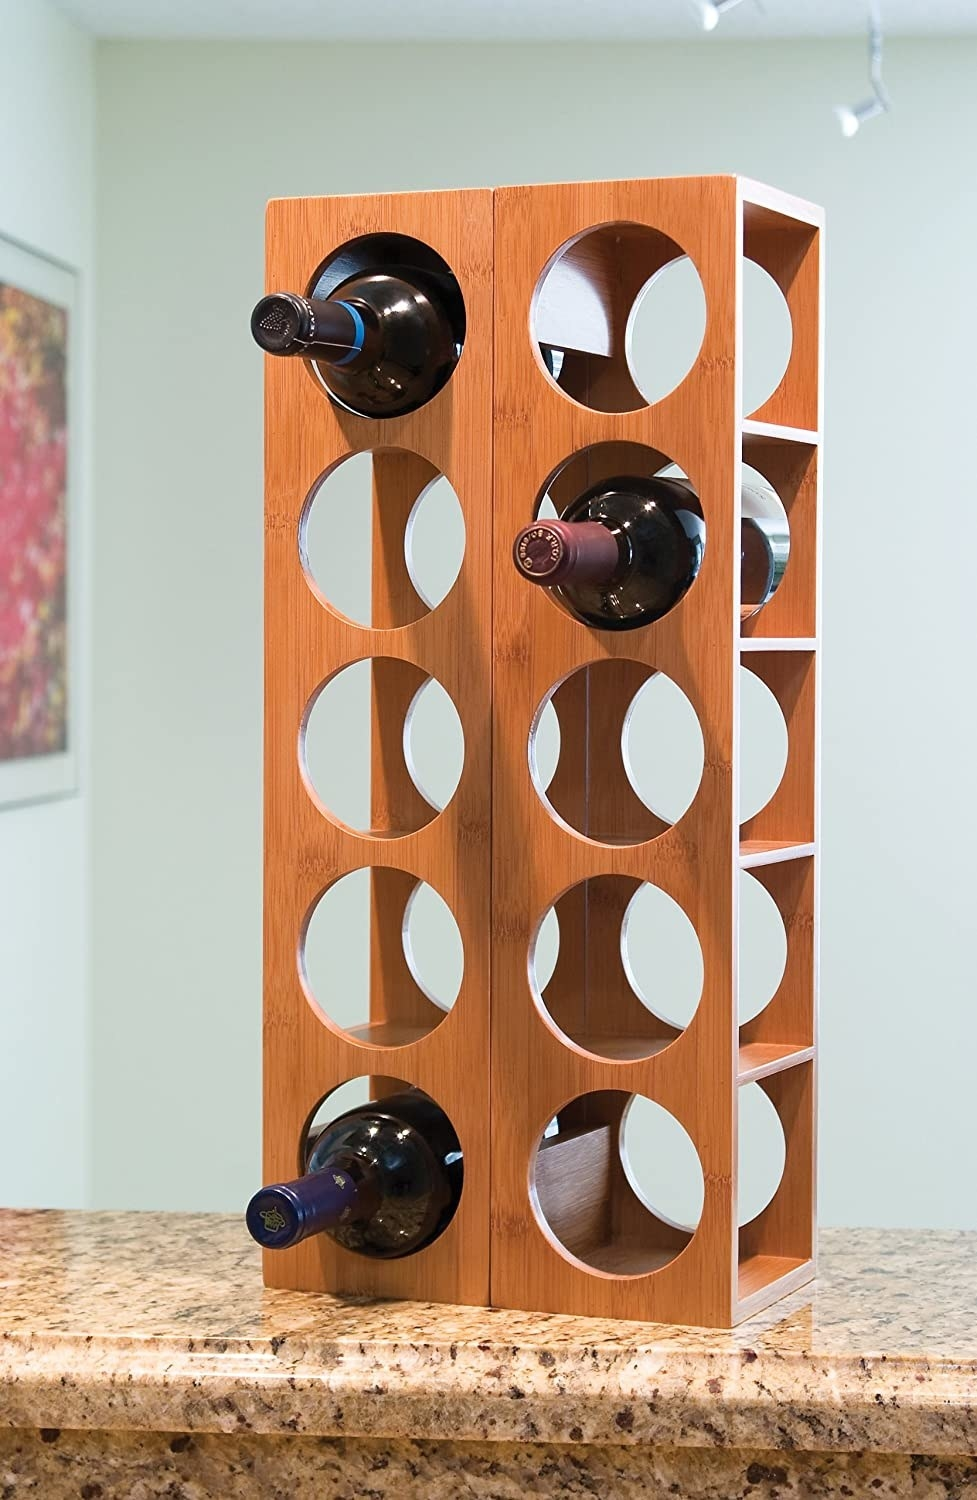 two of the wine racks stacked next to each other with one wine bottle in each side